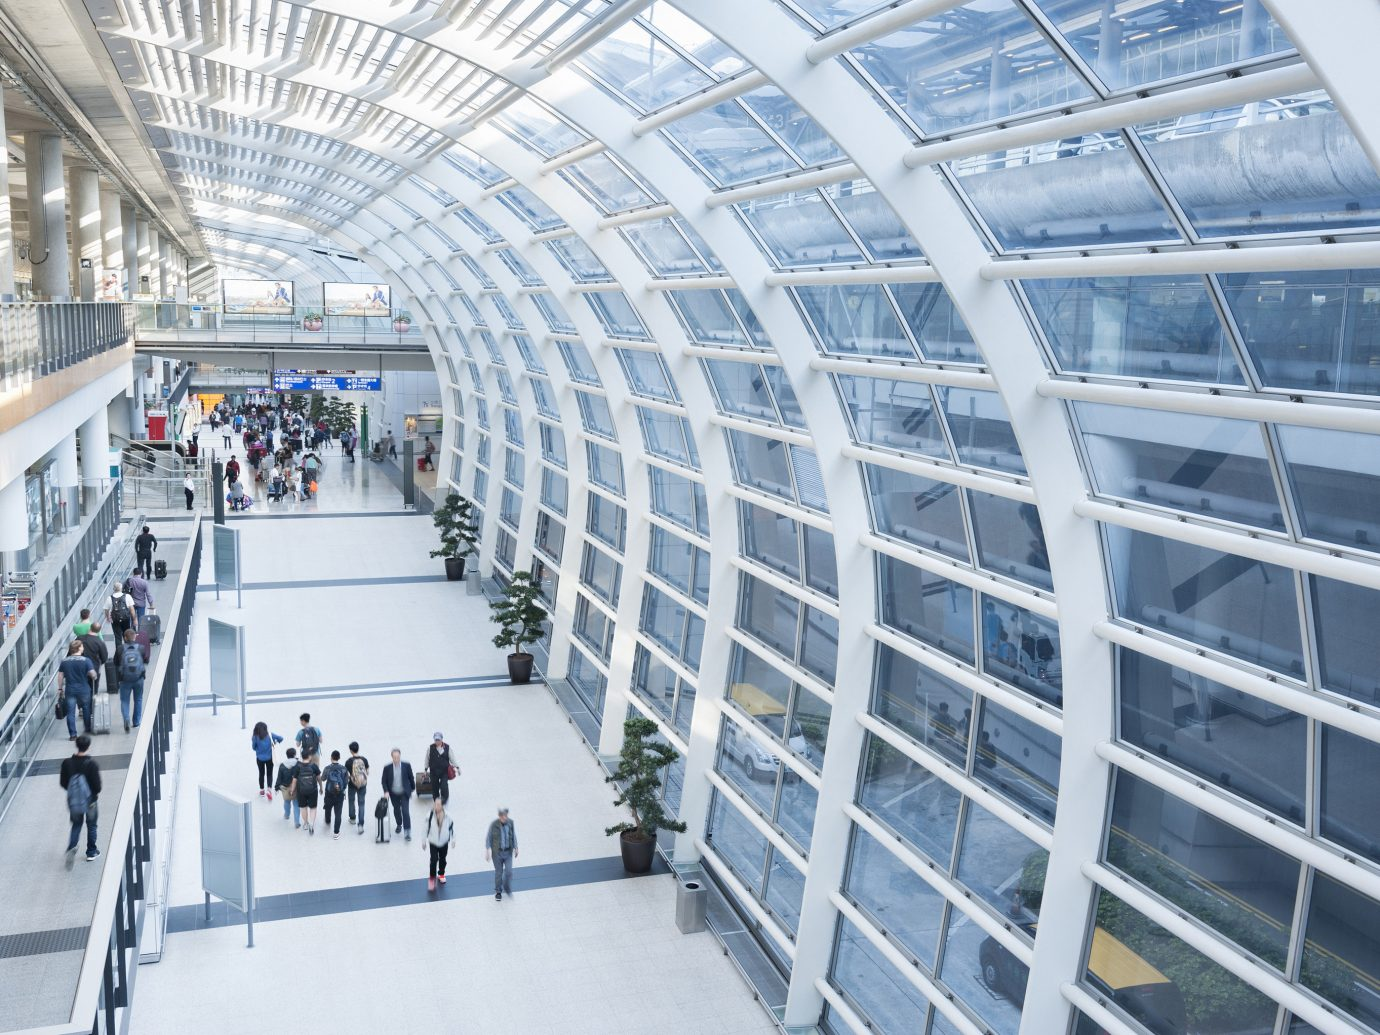 Travel Tips building Architecture airport terminal headquarters manufacturing plaza